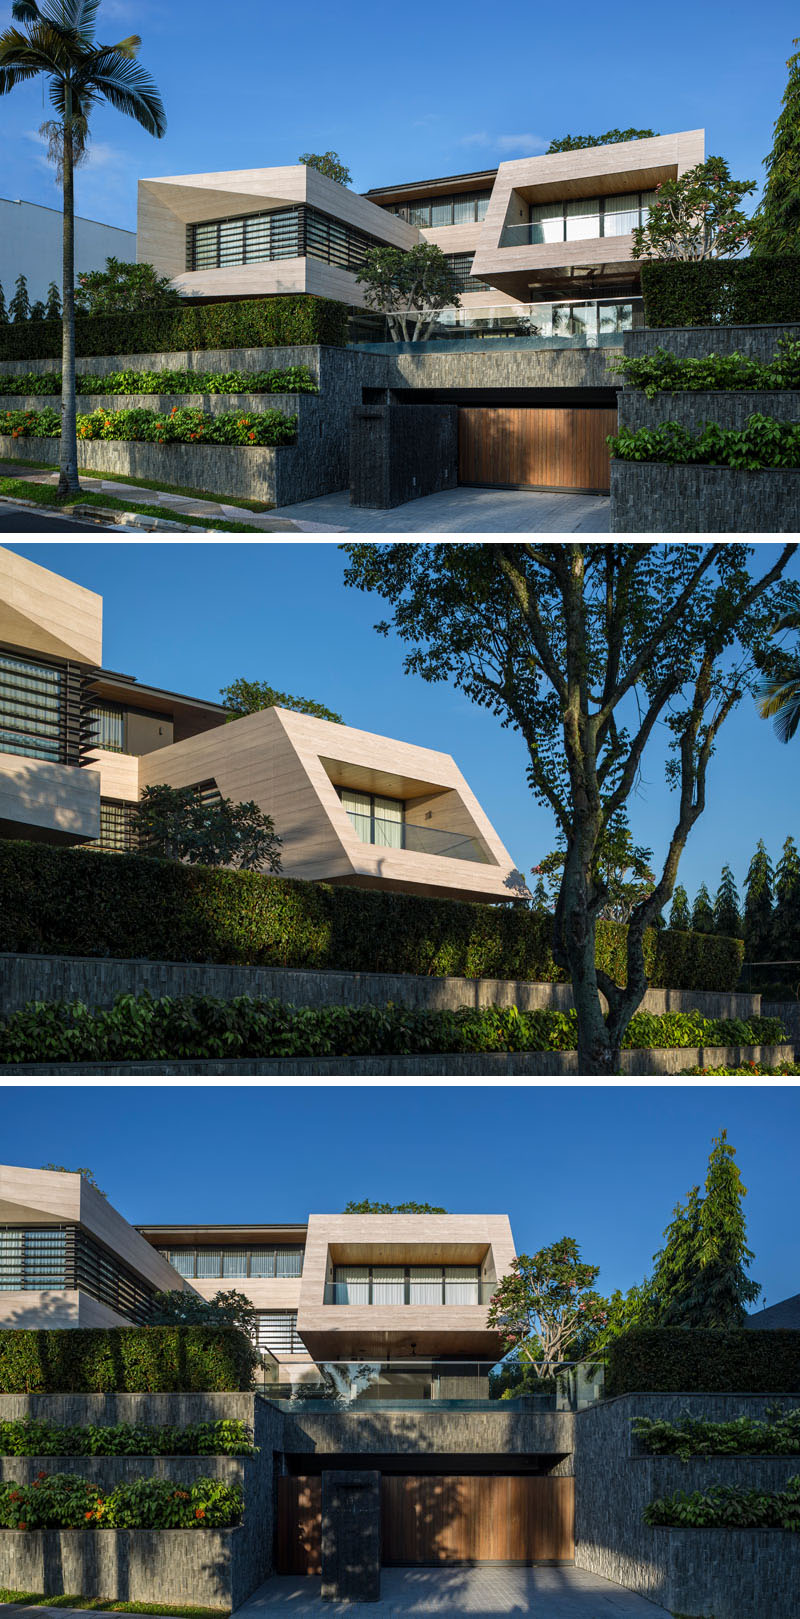 This modern house, which sits 13 feet (4m) above street level, has a slate covered terraced garden on either side of the garage and entryway. #ModernHouse #TerracedGarden #CurbAppeal